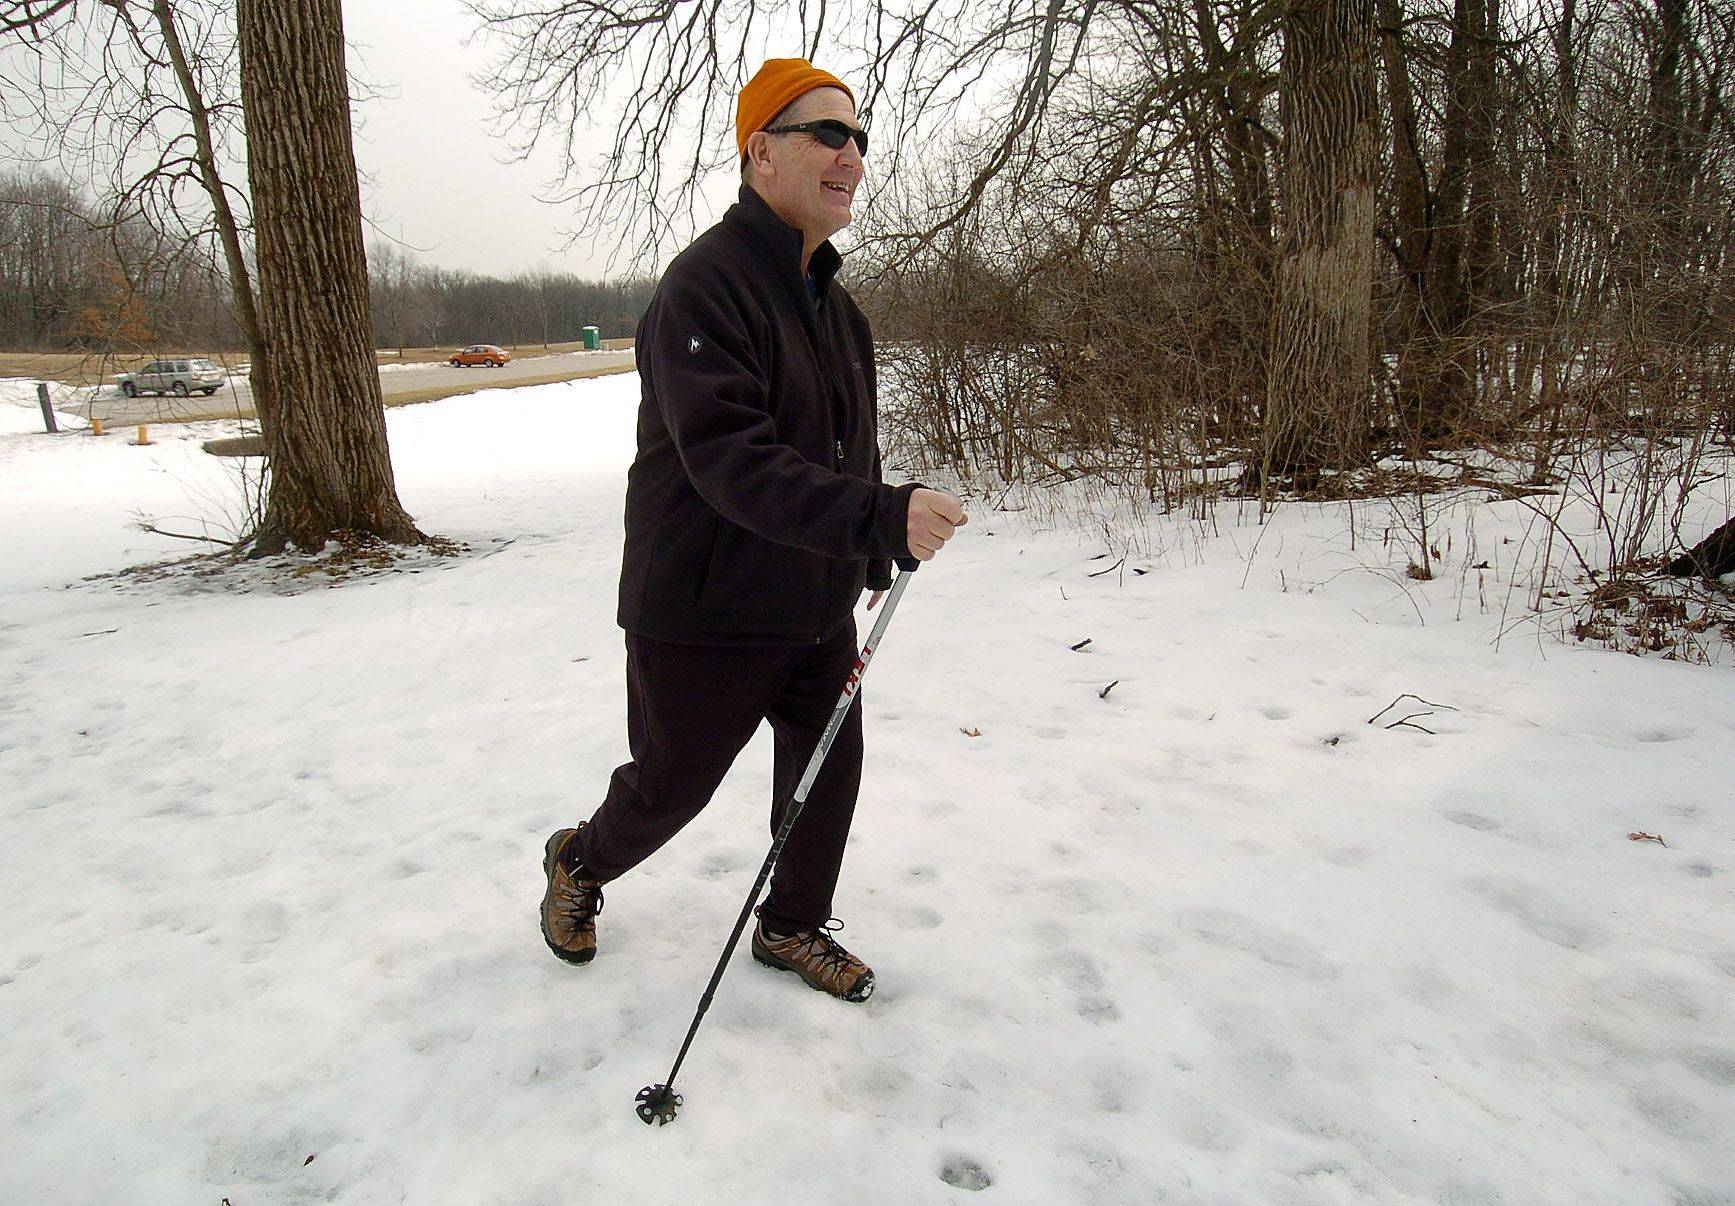 Bill Baltutis of Palatine usually cross country skis a couple of times a week when the conditions are right. Here he uses his ski pole to navigate through a thawing Deer Grove West Forest Preserve in Palatine.